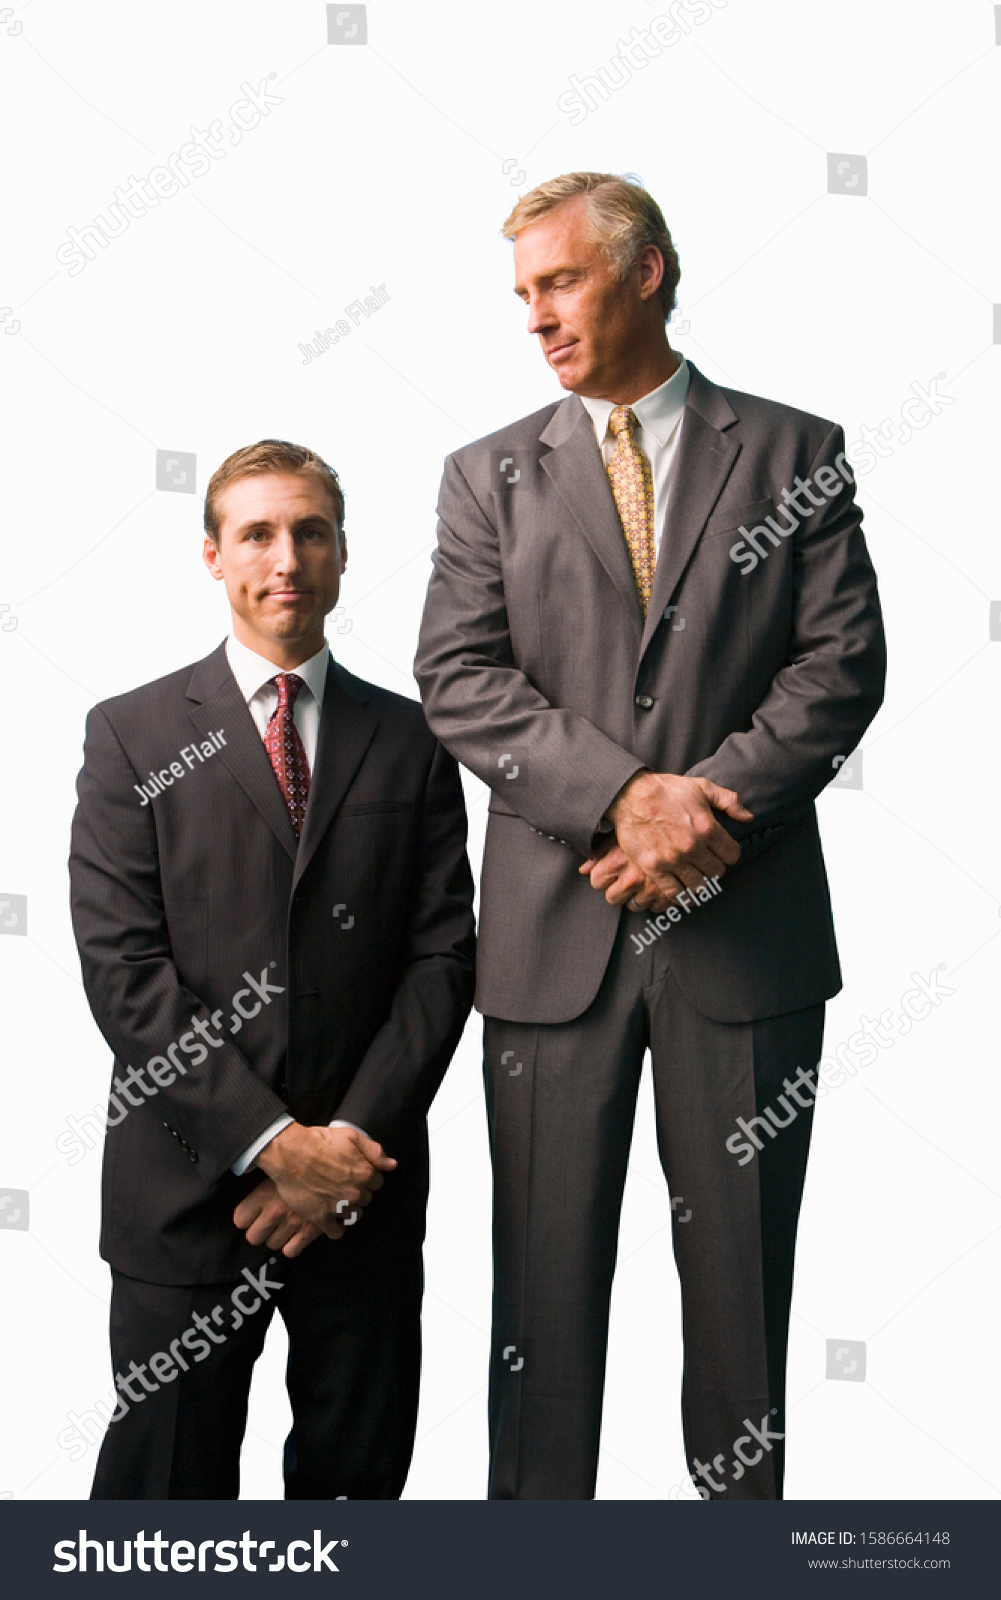 Businessmen posing, tall, small, cut out #1586664148